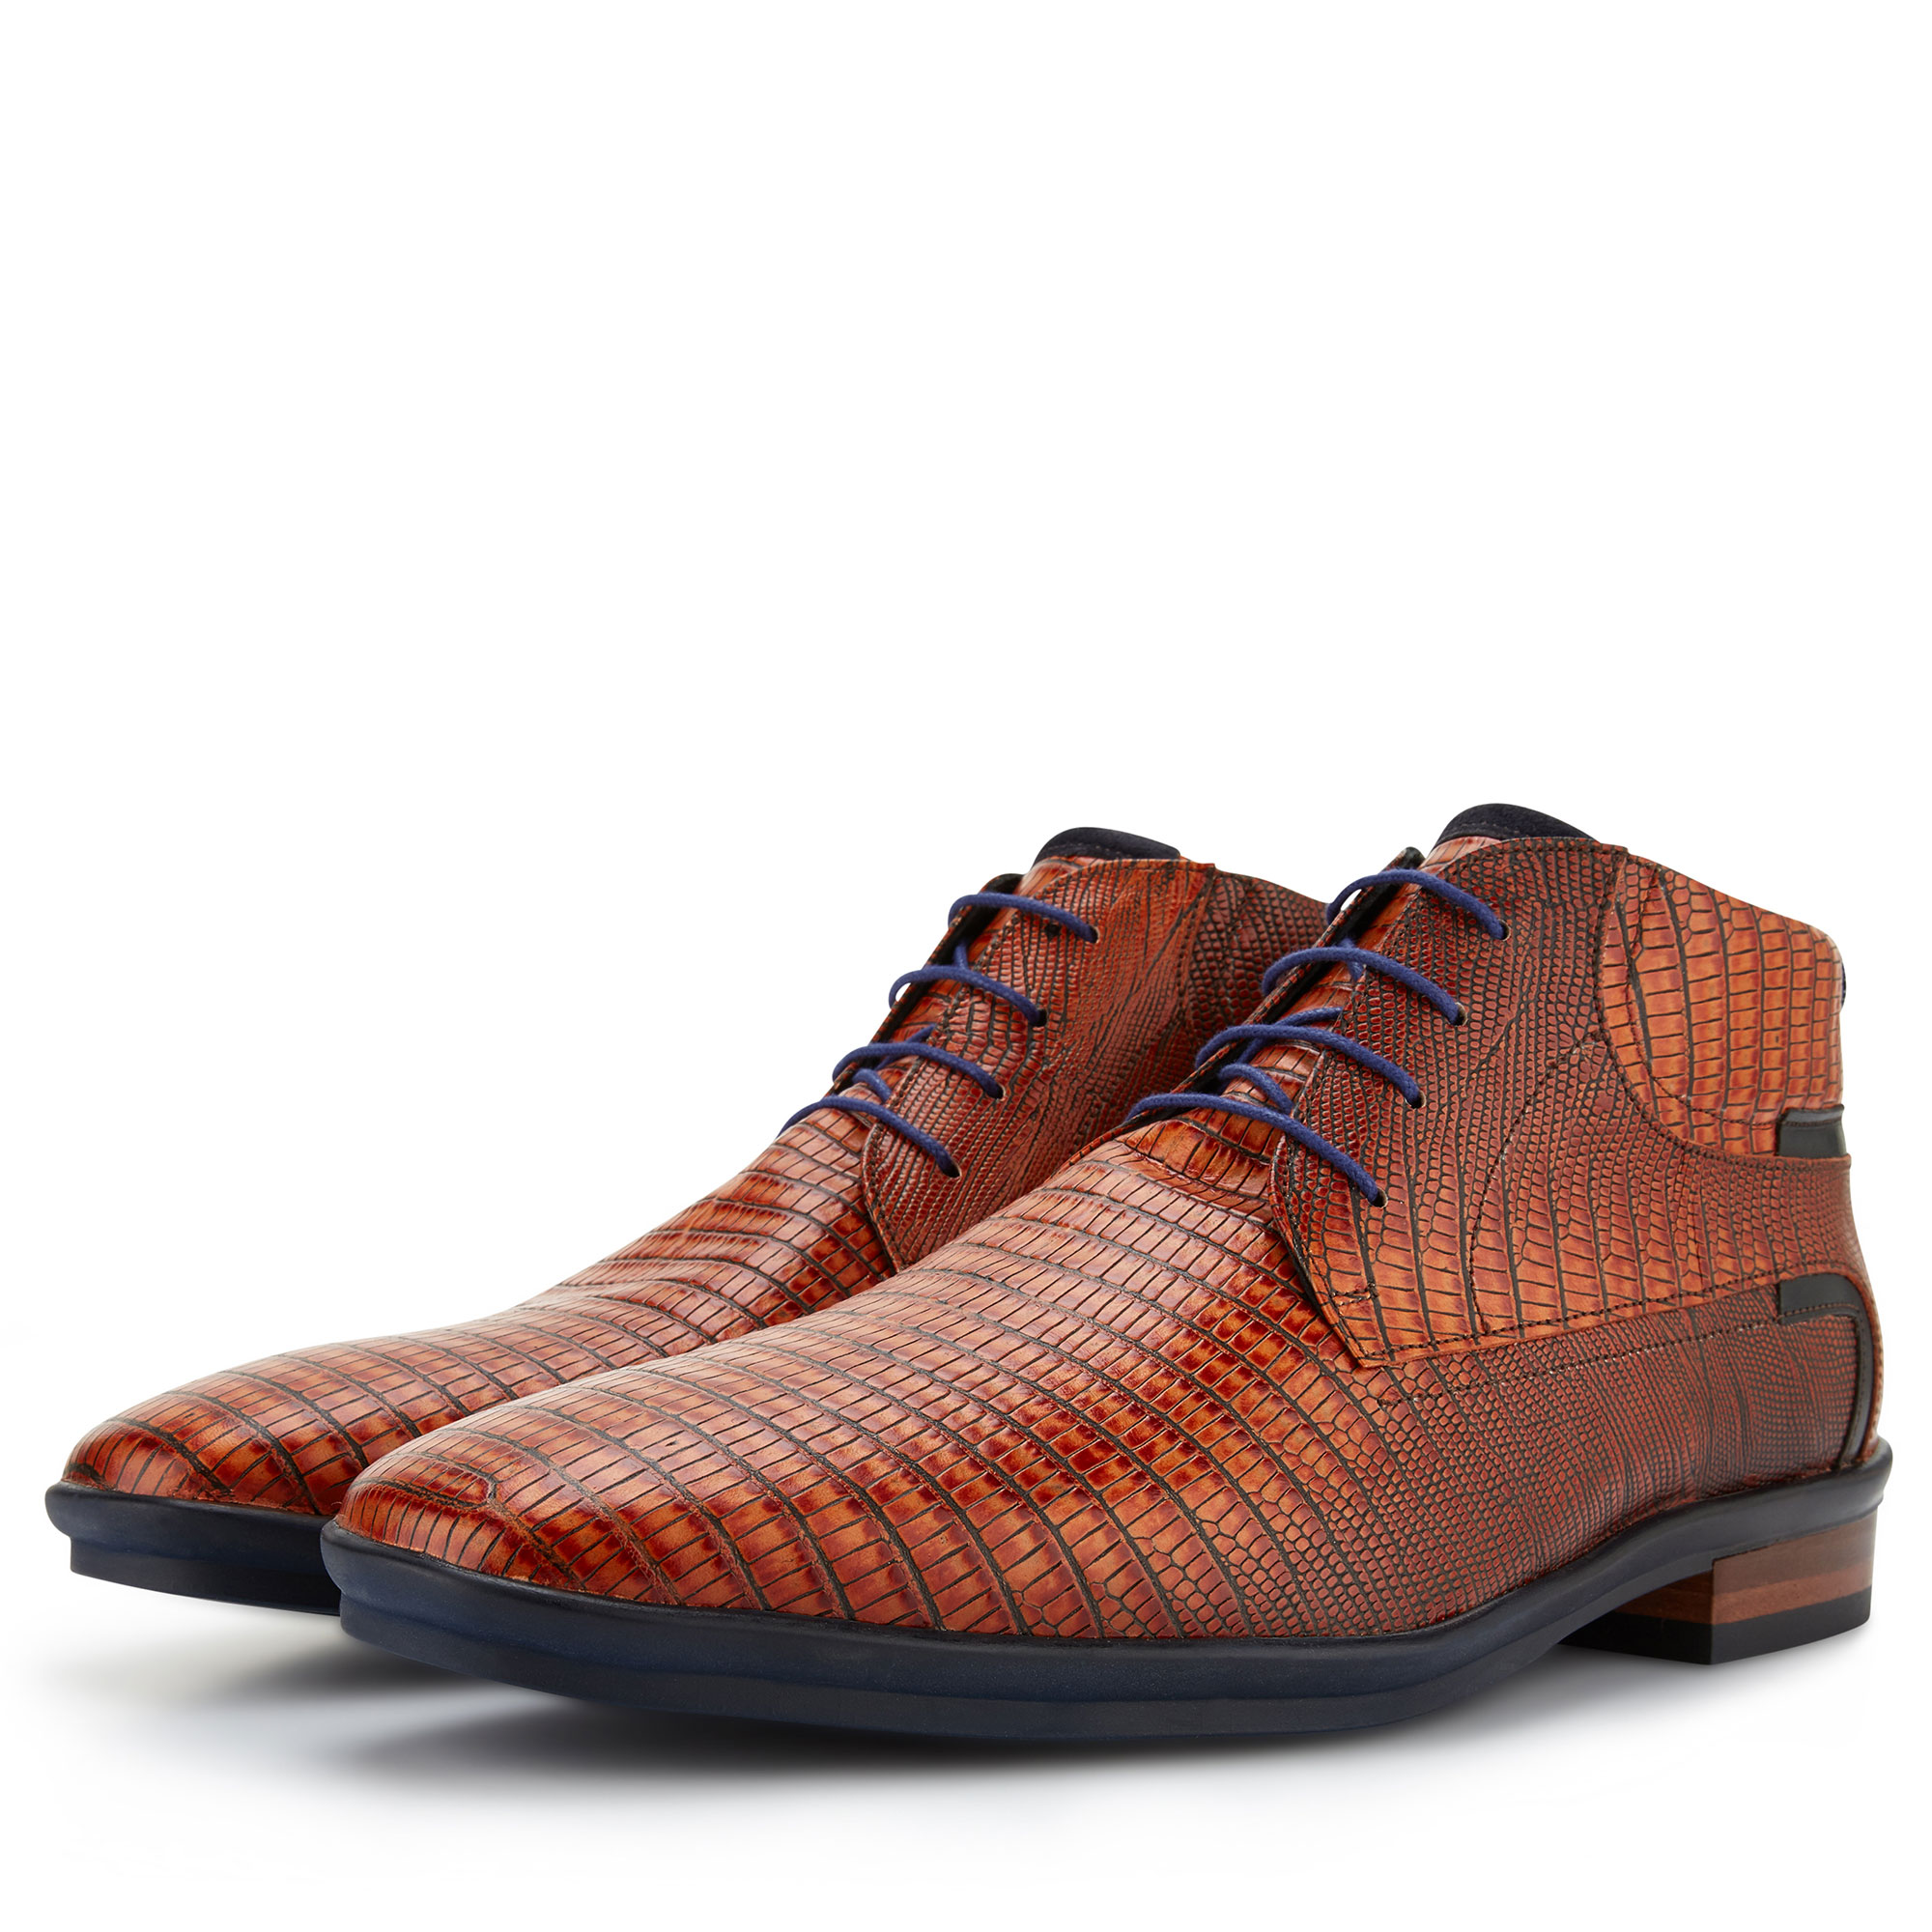 10879/00 - Floris van Bommel cognac lizardprint veterboot